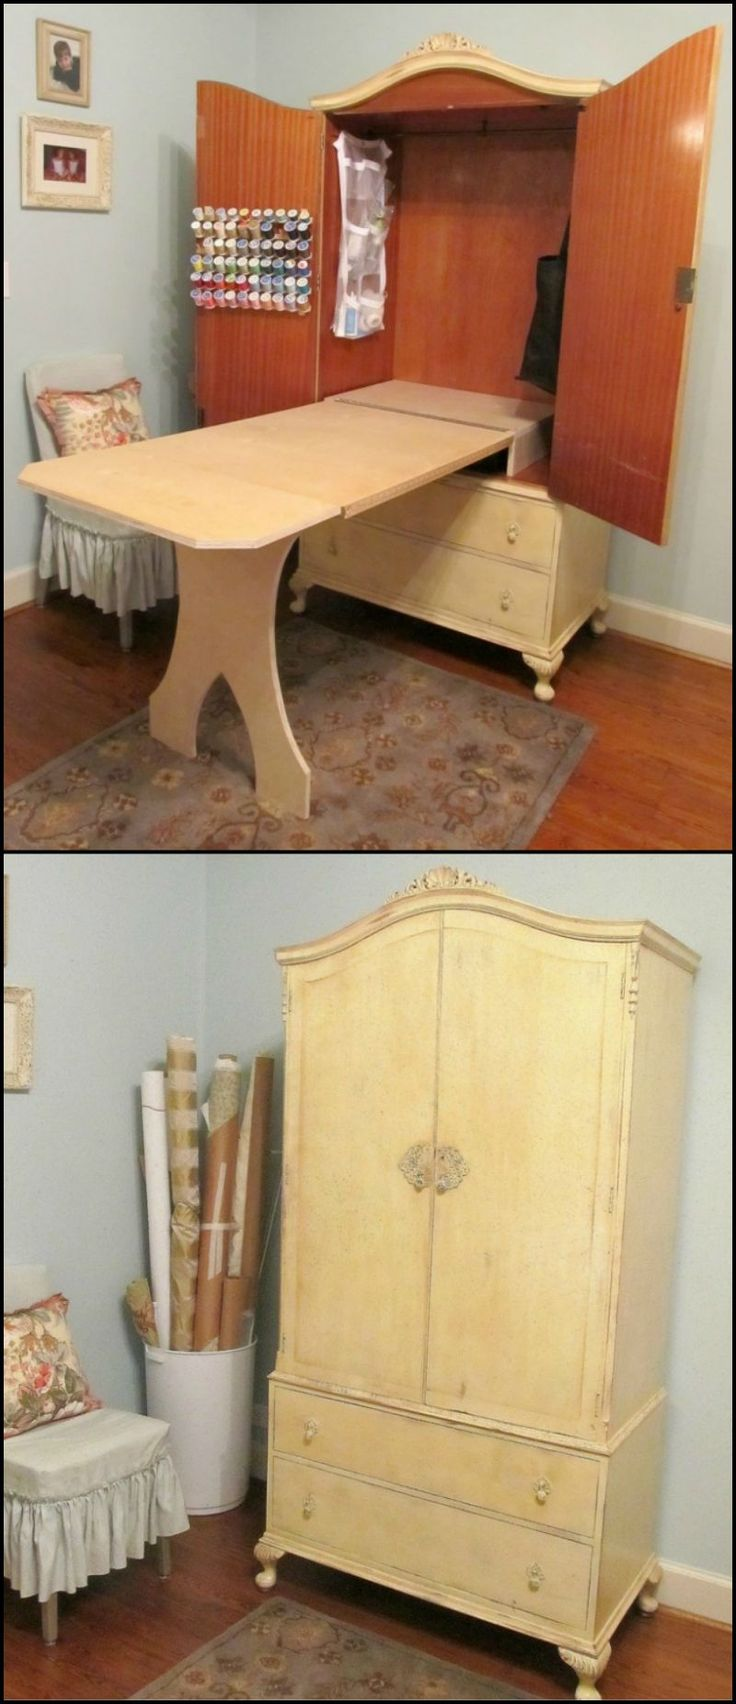 296 best Craft room images on Pinterest | Sewing studio, Sewing ...